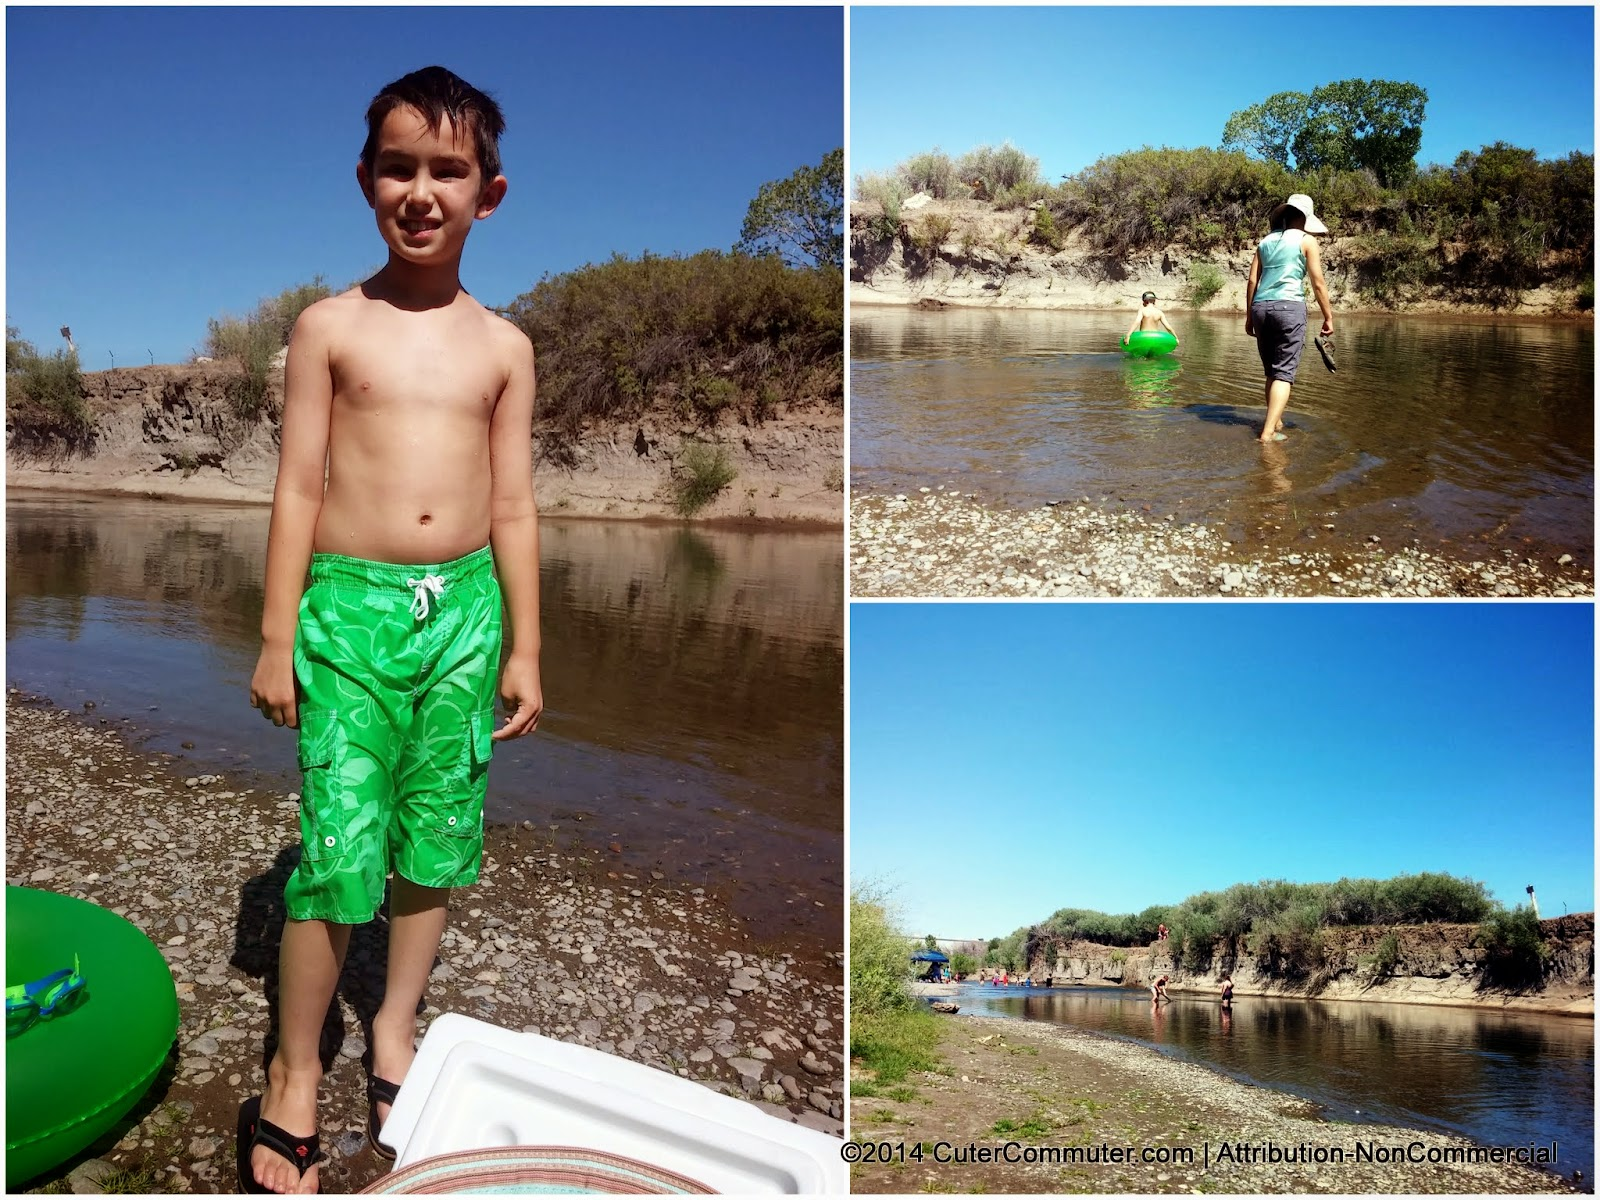 Boy on the beach at the Truckee River